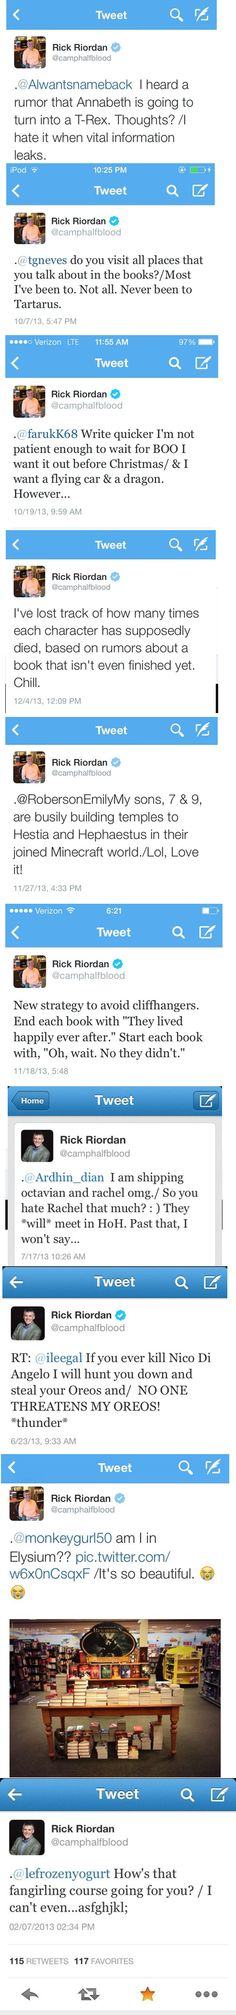 Rick Riordan tweets. 2 points. 1:  Love his strategy for avoiding cliffhangers.  2:  Even Uncle Rick hates Octavian.